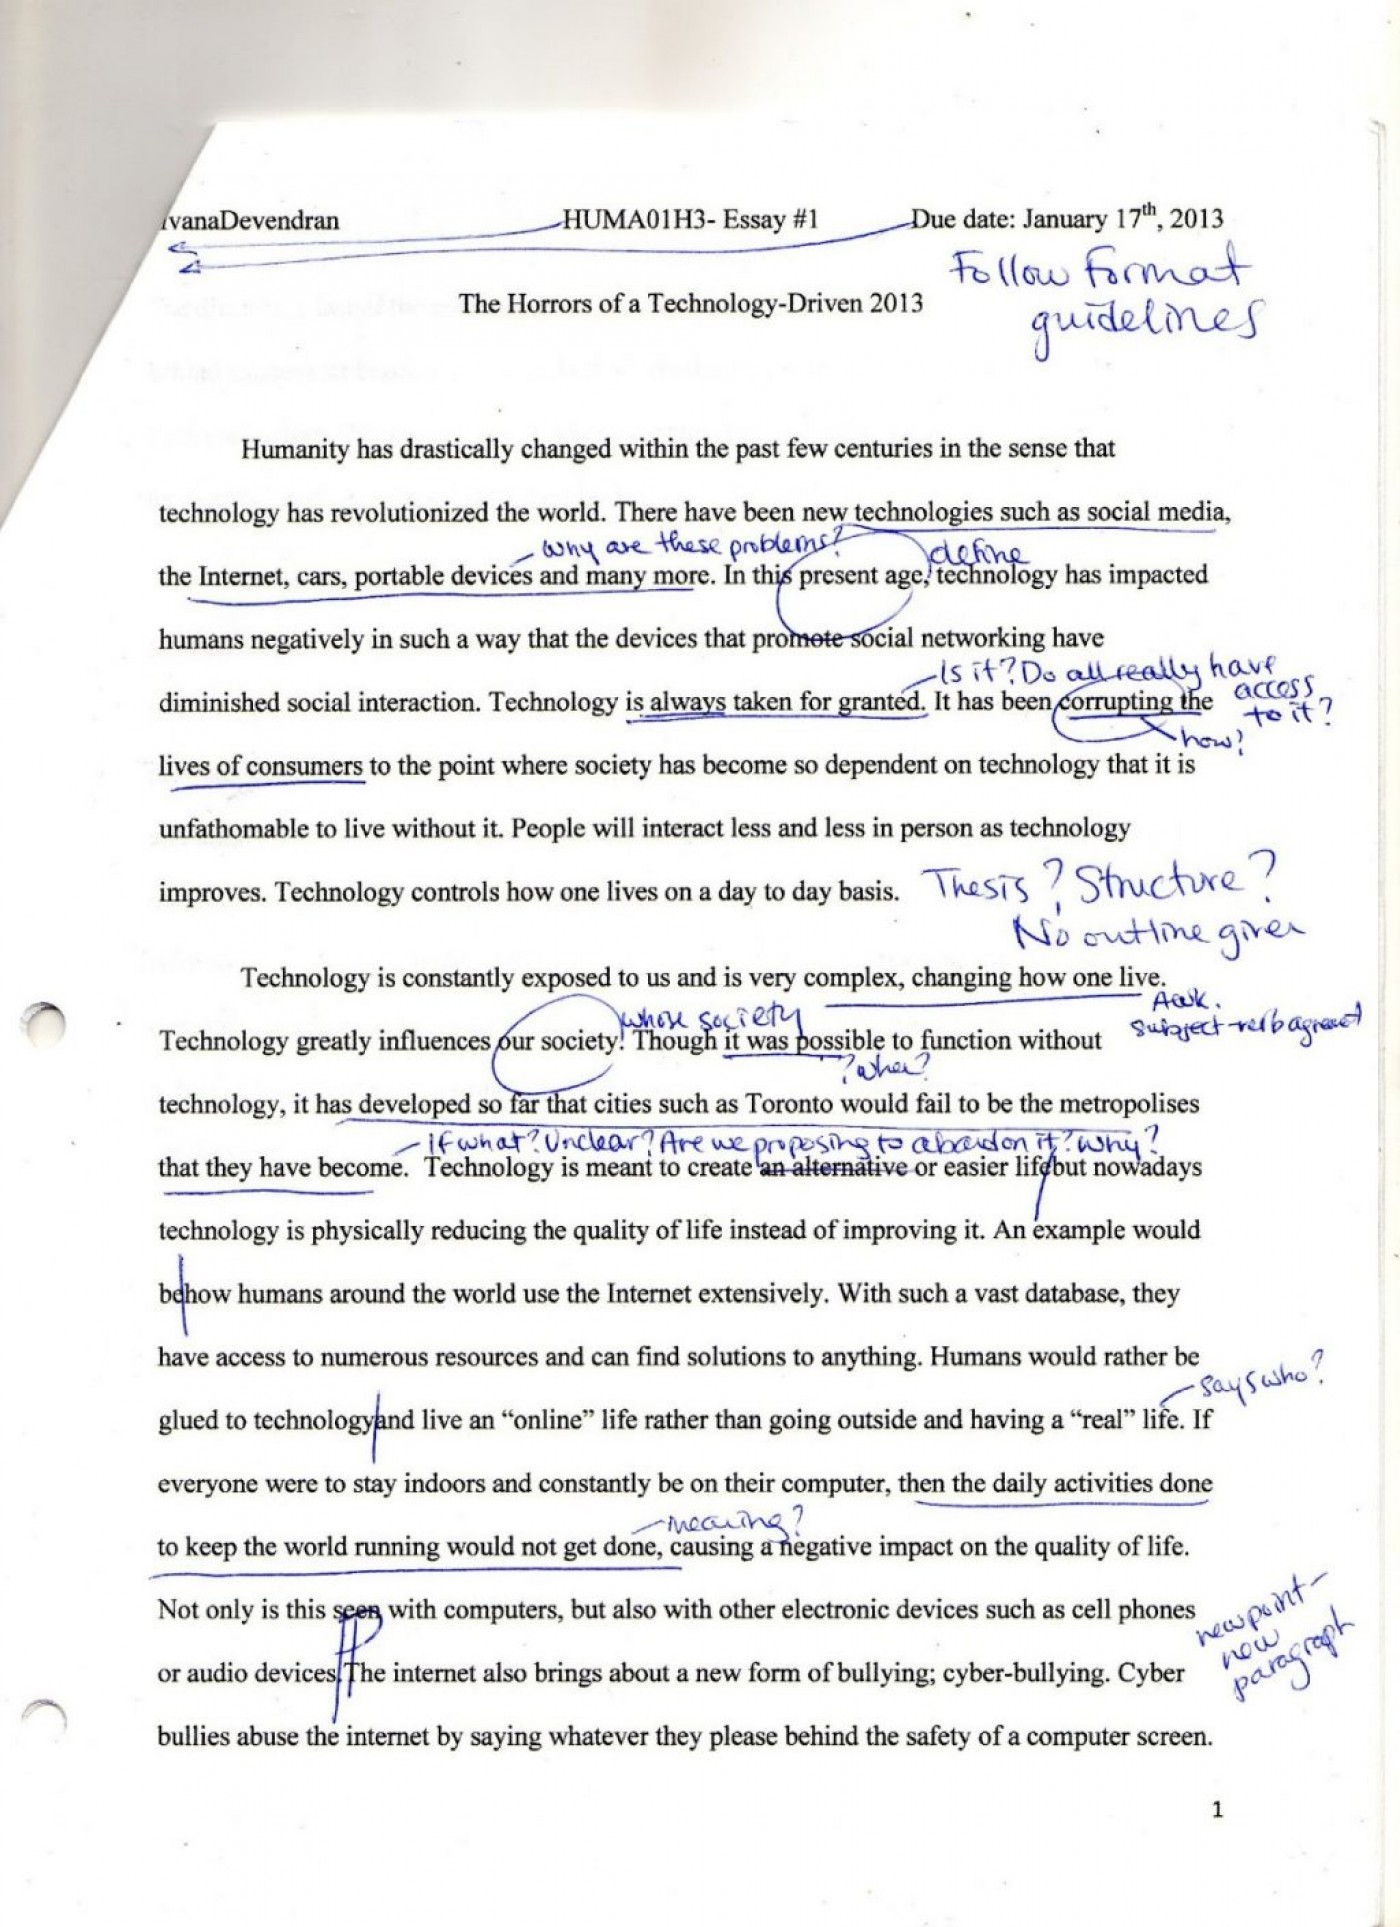 005 Essay Topics Music Img008 What Should You Avoid In Writingearch Paper Humanities Appreciation Questions Classical History Persuasive20 1024x1410 Persuasive About Awful Research Writing 1400